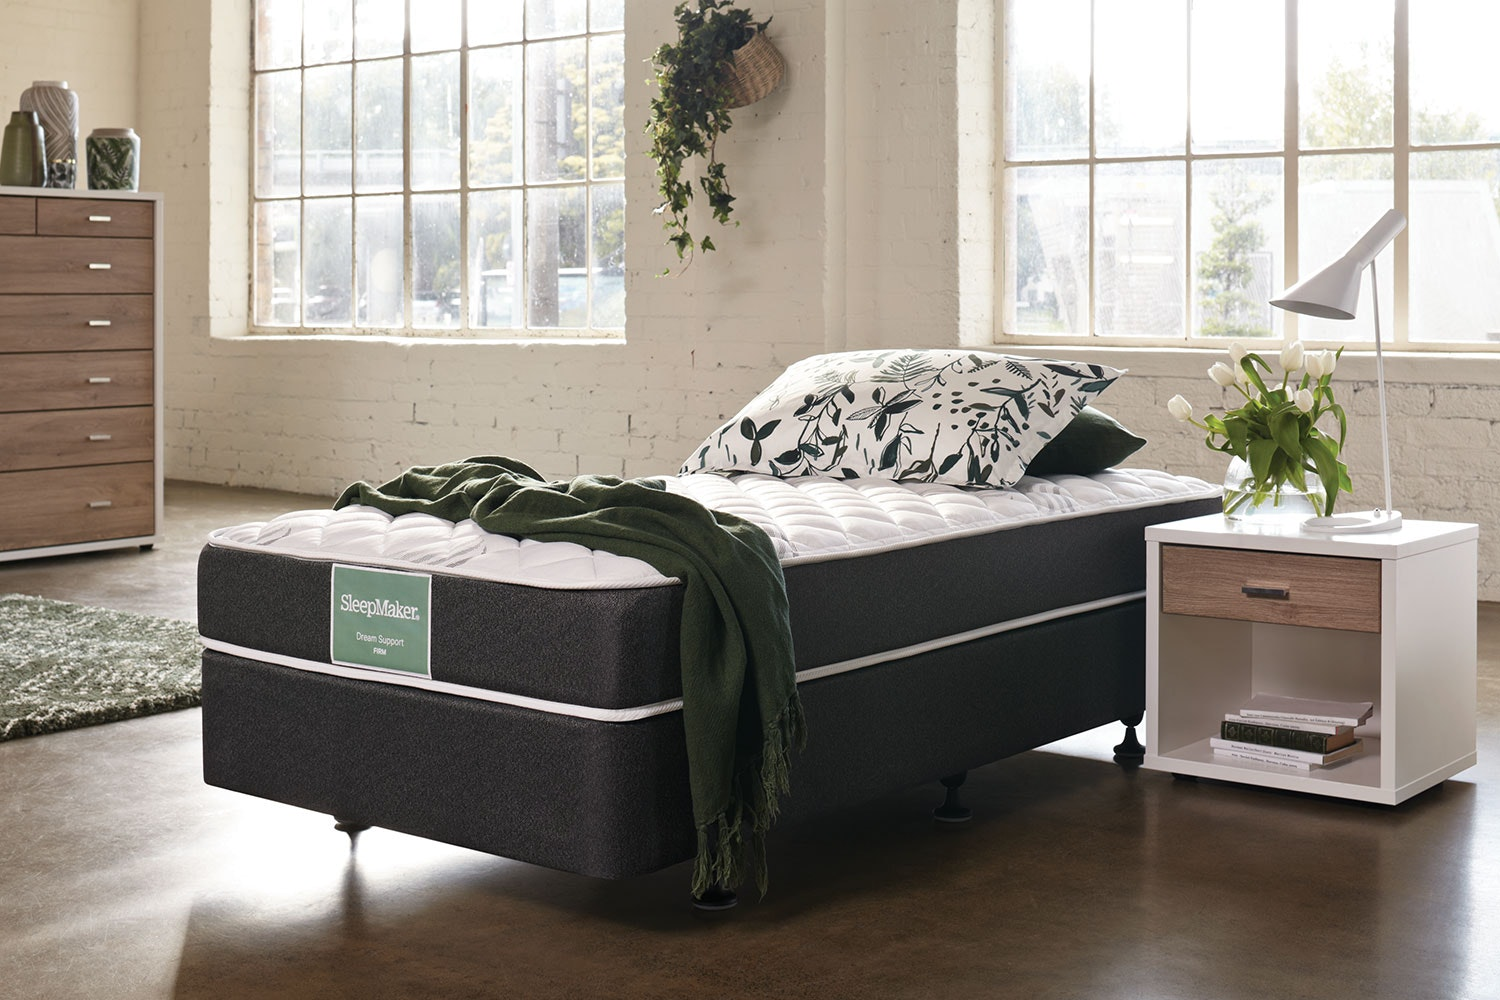 Dream Support Firm Single Bed by Sleepmaker